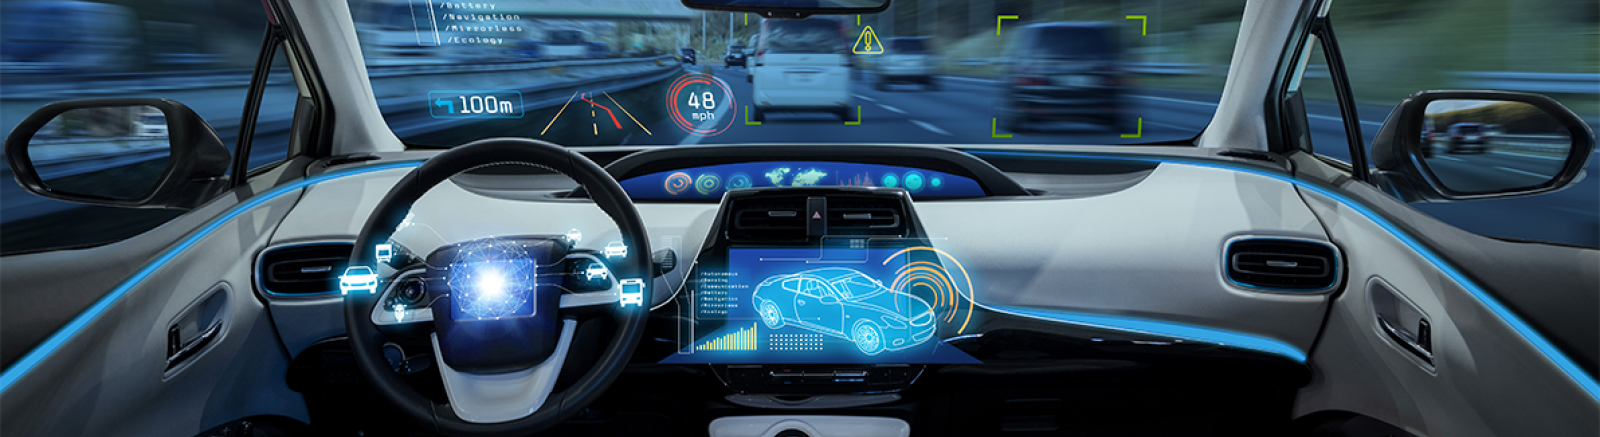 FIA, Mobility, Autonomous vehicles, driverless